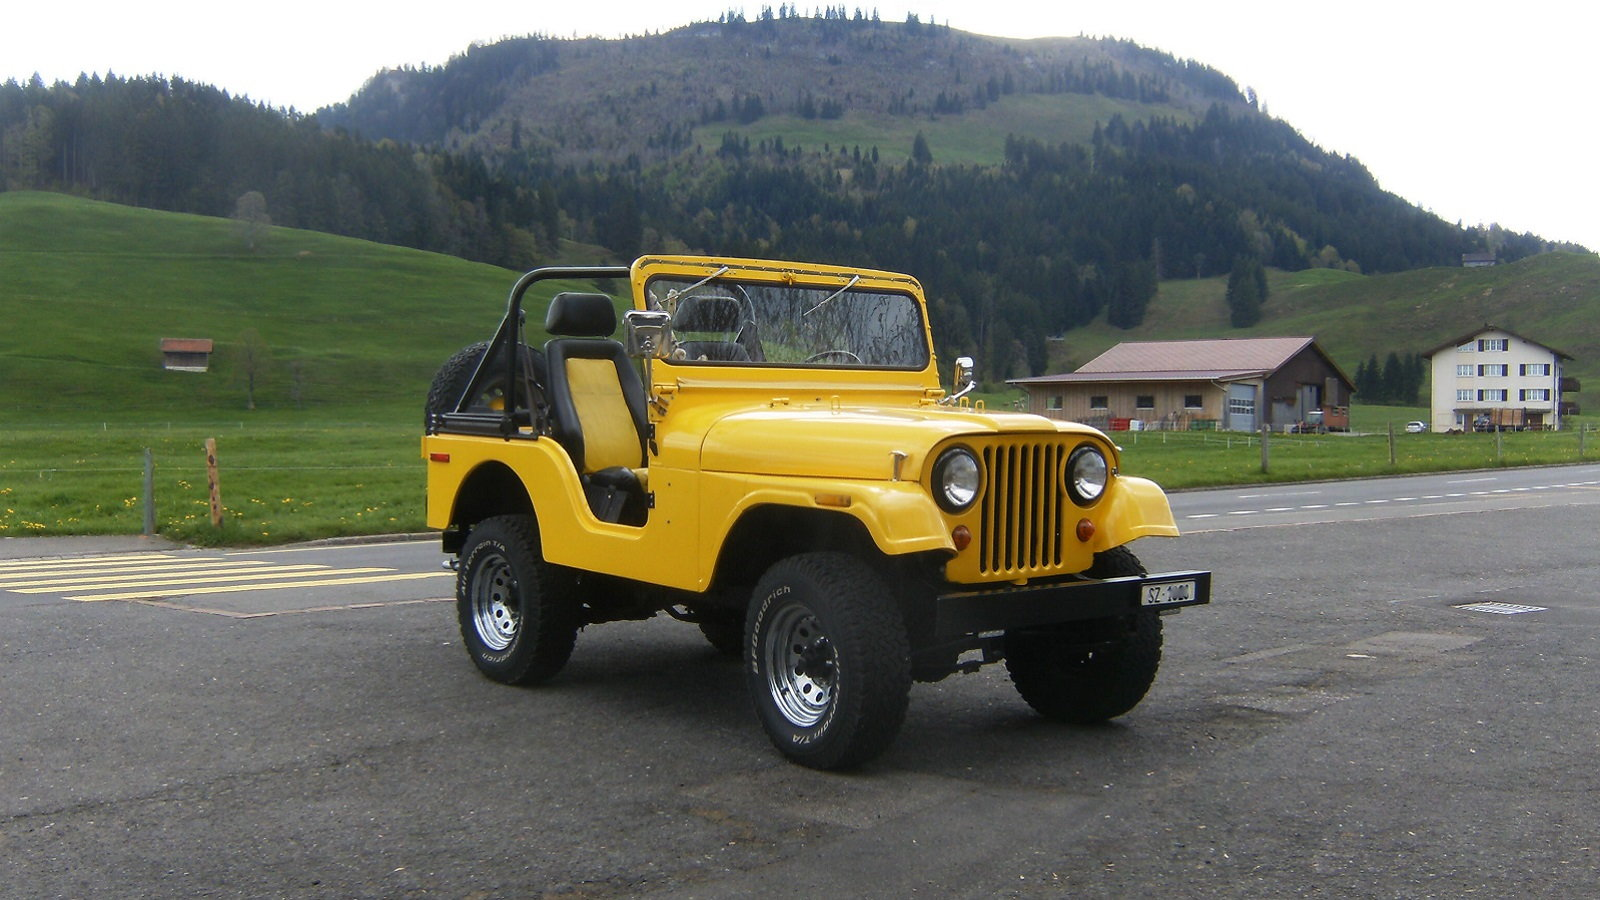 8 Different Companies Have Owned Jeep